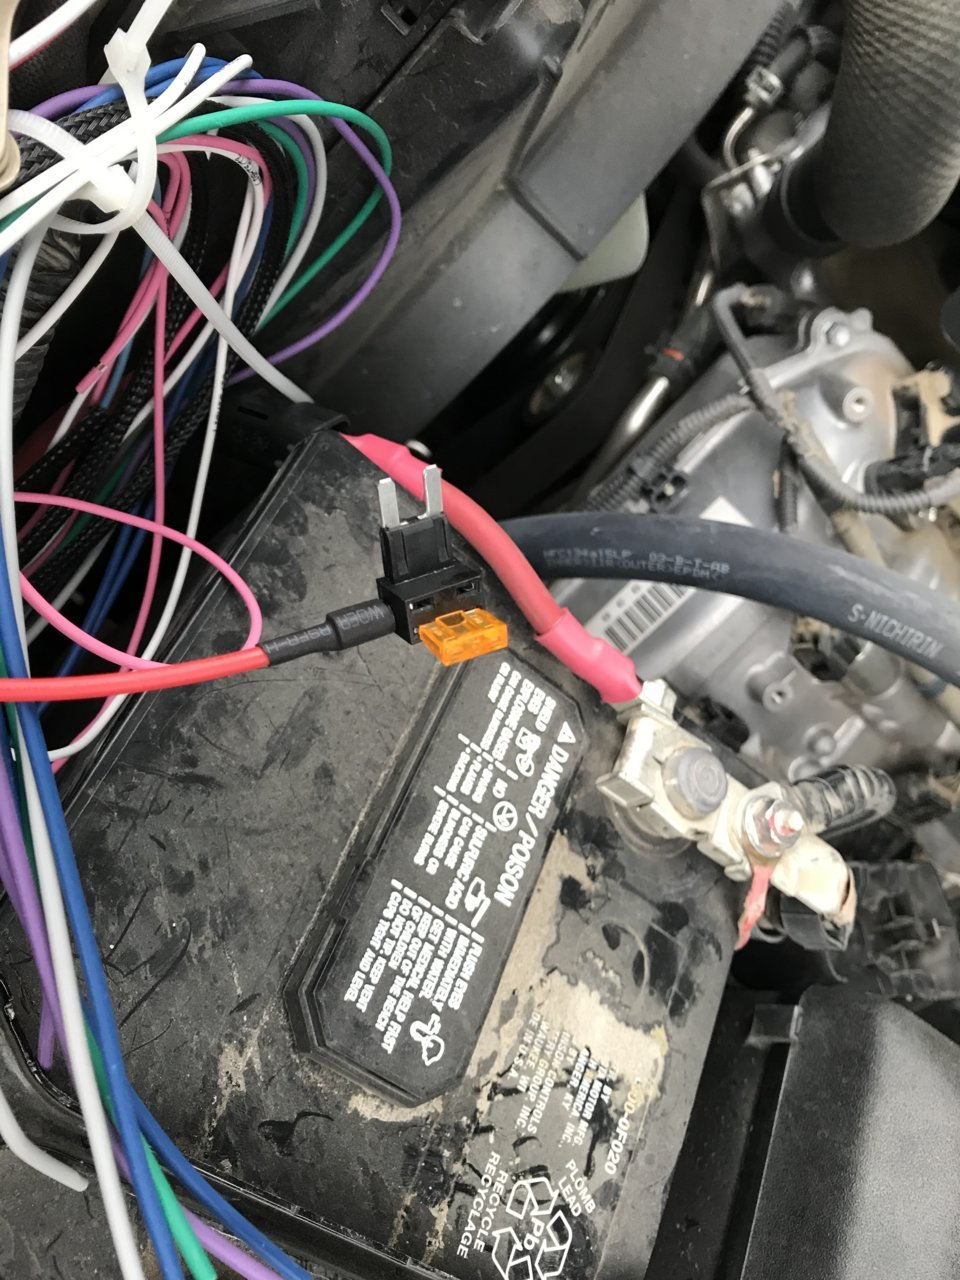 Switch Pros Sp 9100 Install Page 2 Toyota Tundra Forum Wiring Up Secondary Driving Lights High Beams And Independent B4a938f3 F576 4f99 935d D7b69118f378